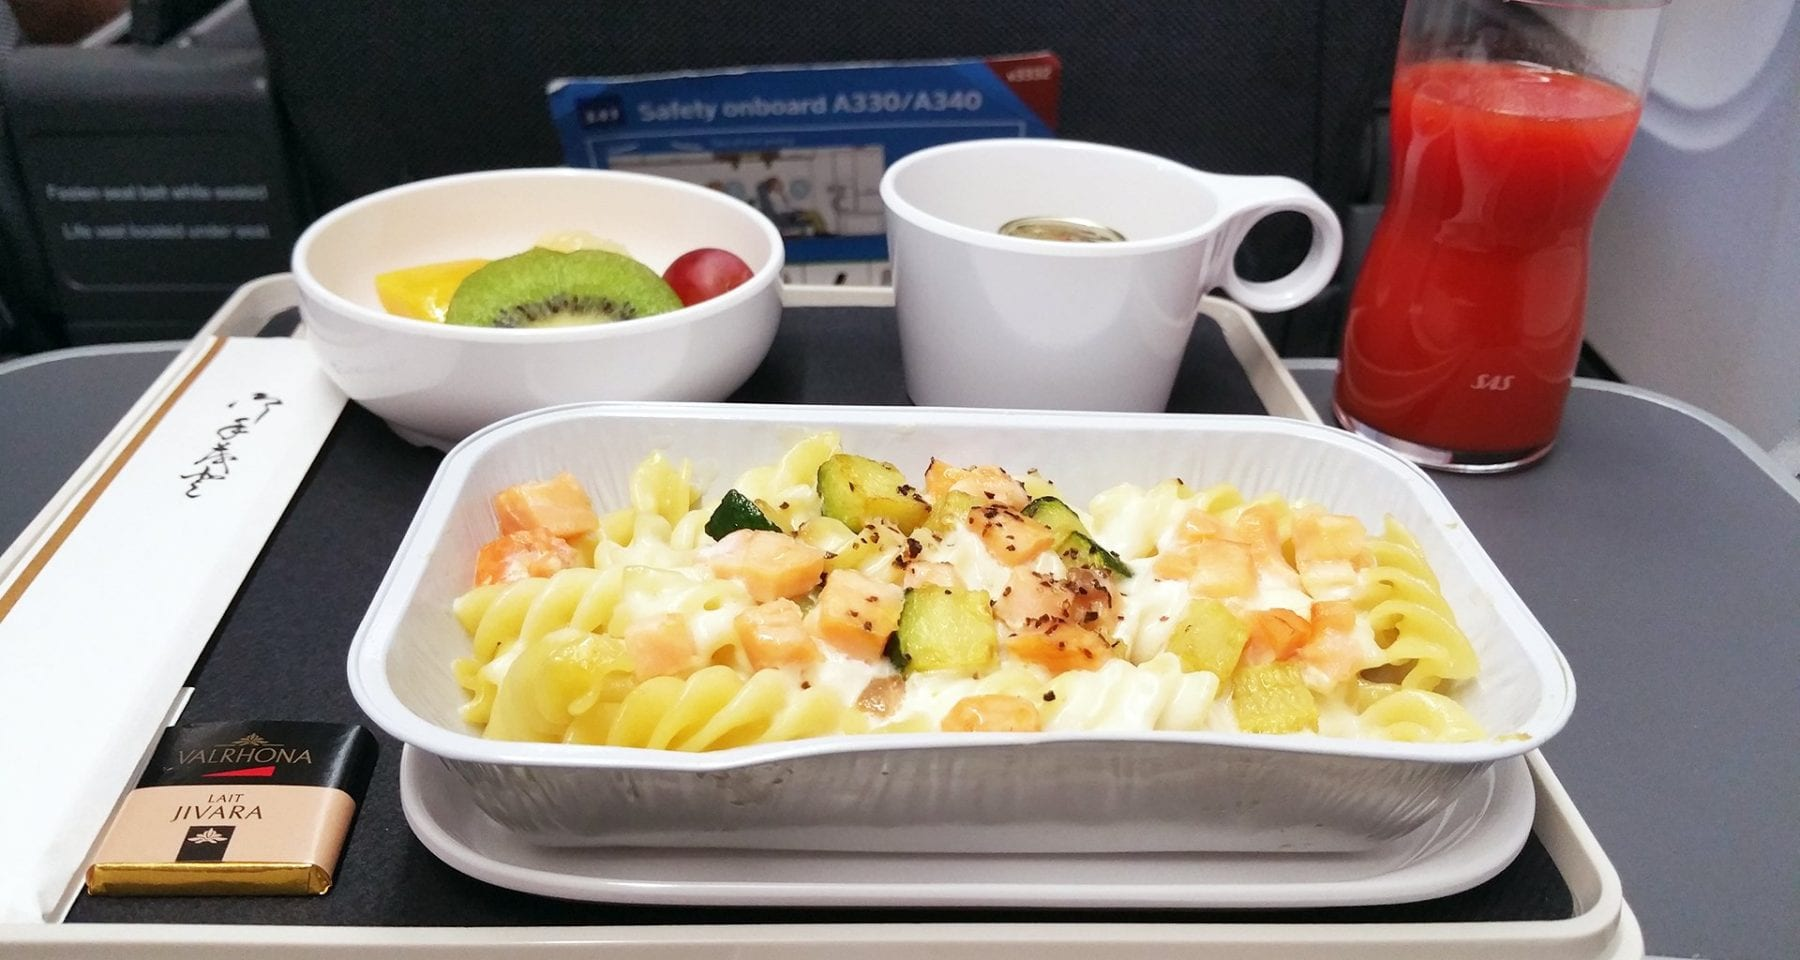 SAS Plus airline meal